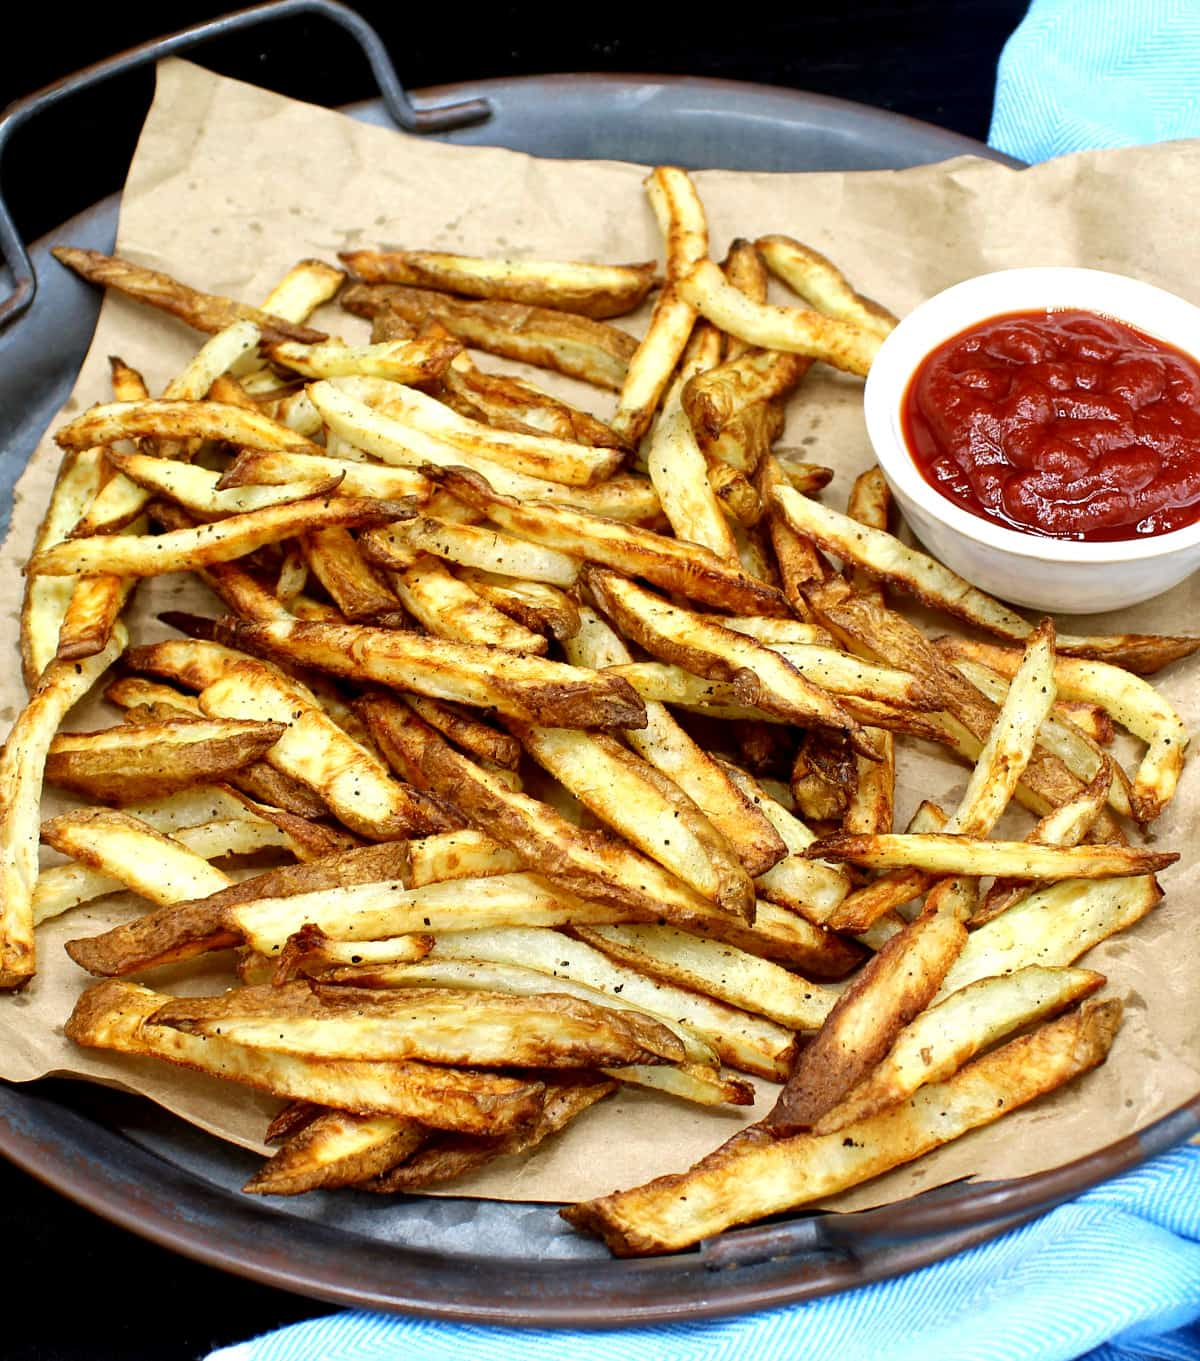 A closeup of air fryer French fries or pommes frites, golden and crispy, on brown paper. These are made with very little oil or no oil. Next to the fries is a white ceramic bowl with tomato ketchup.